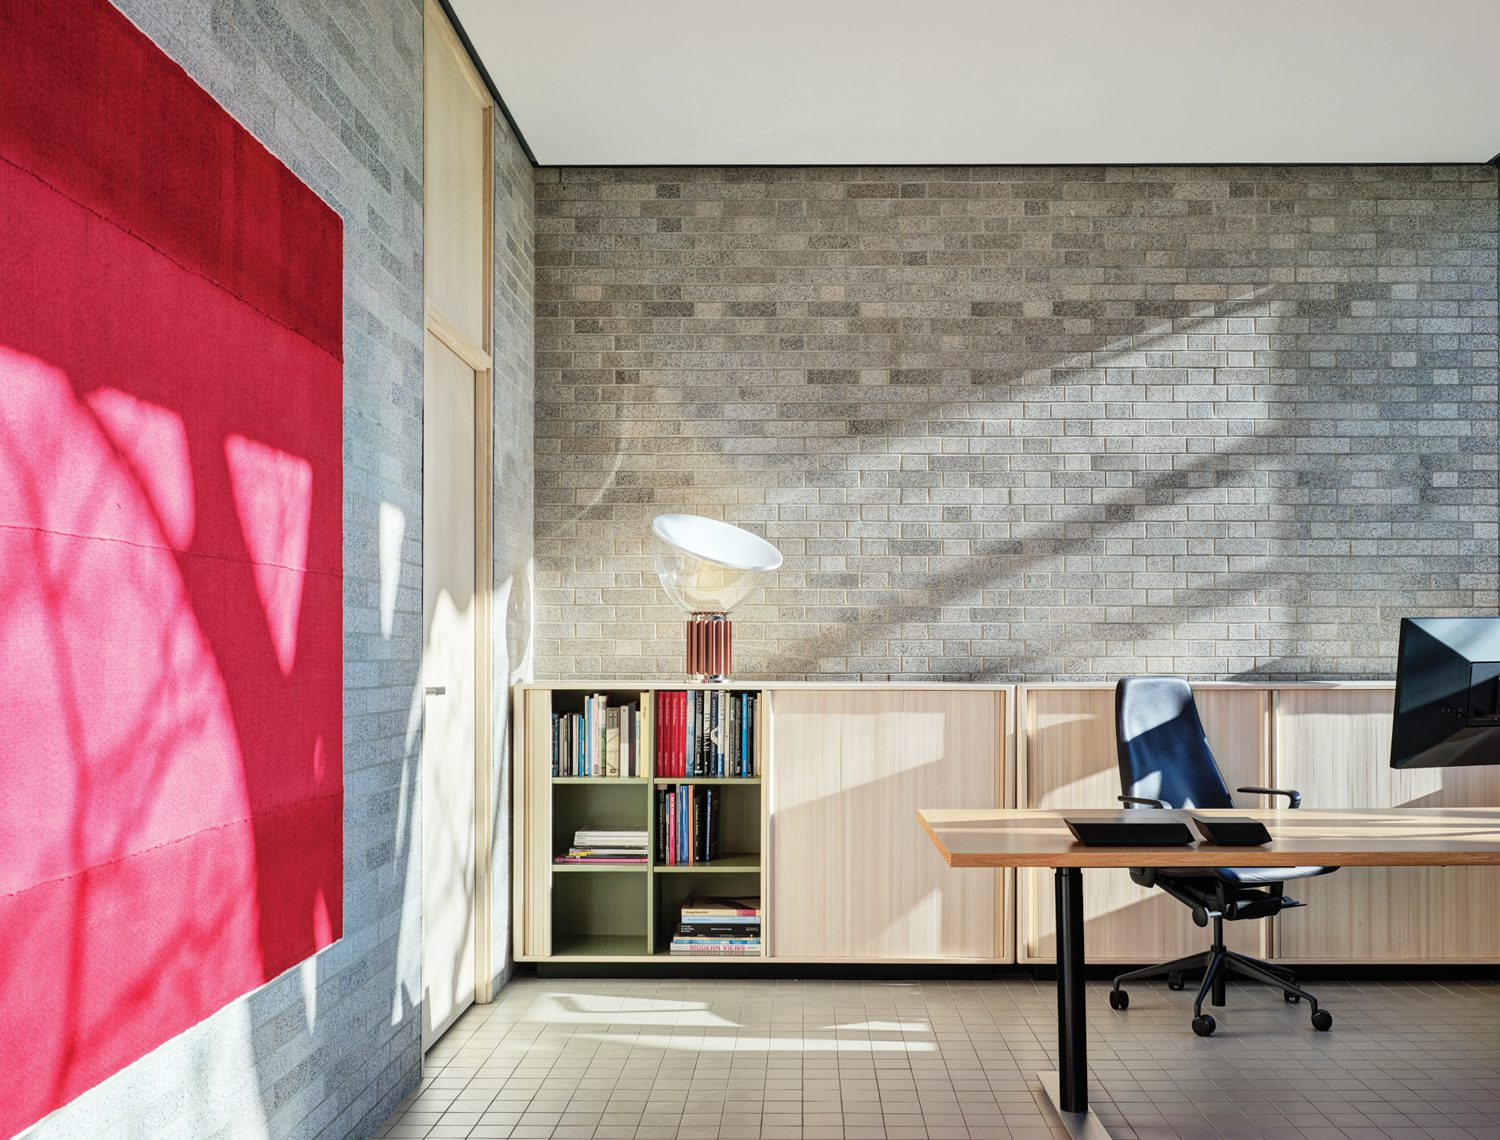 An office's original bricks, cleaned to show their iron-rich glazing, and new French quarry floor tile. Photography by Michael Biondo.